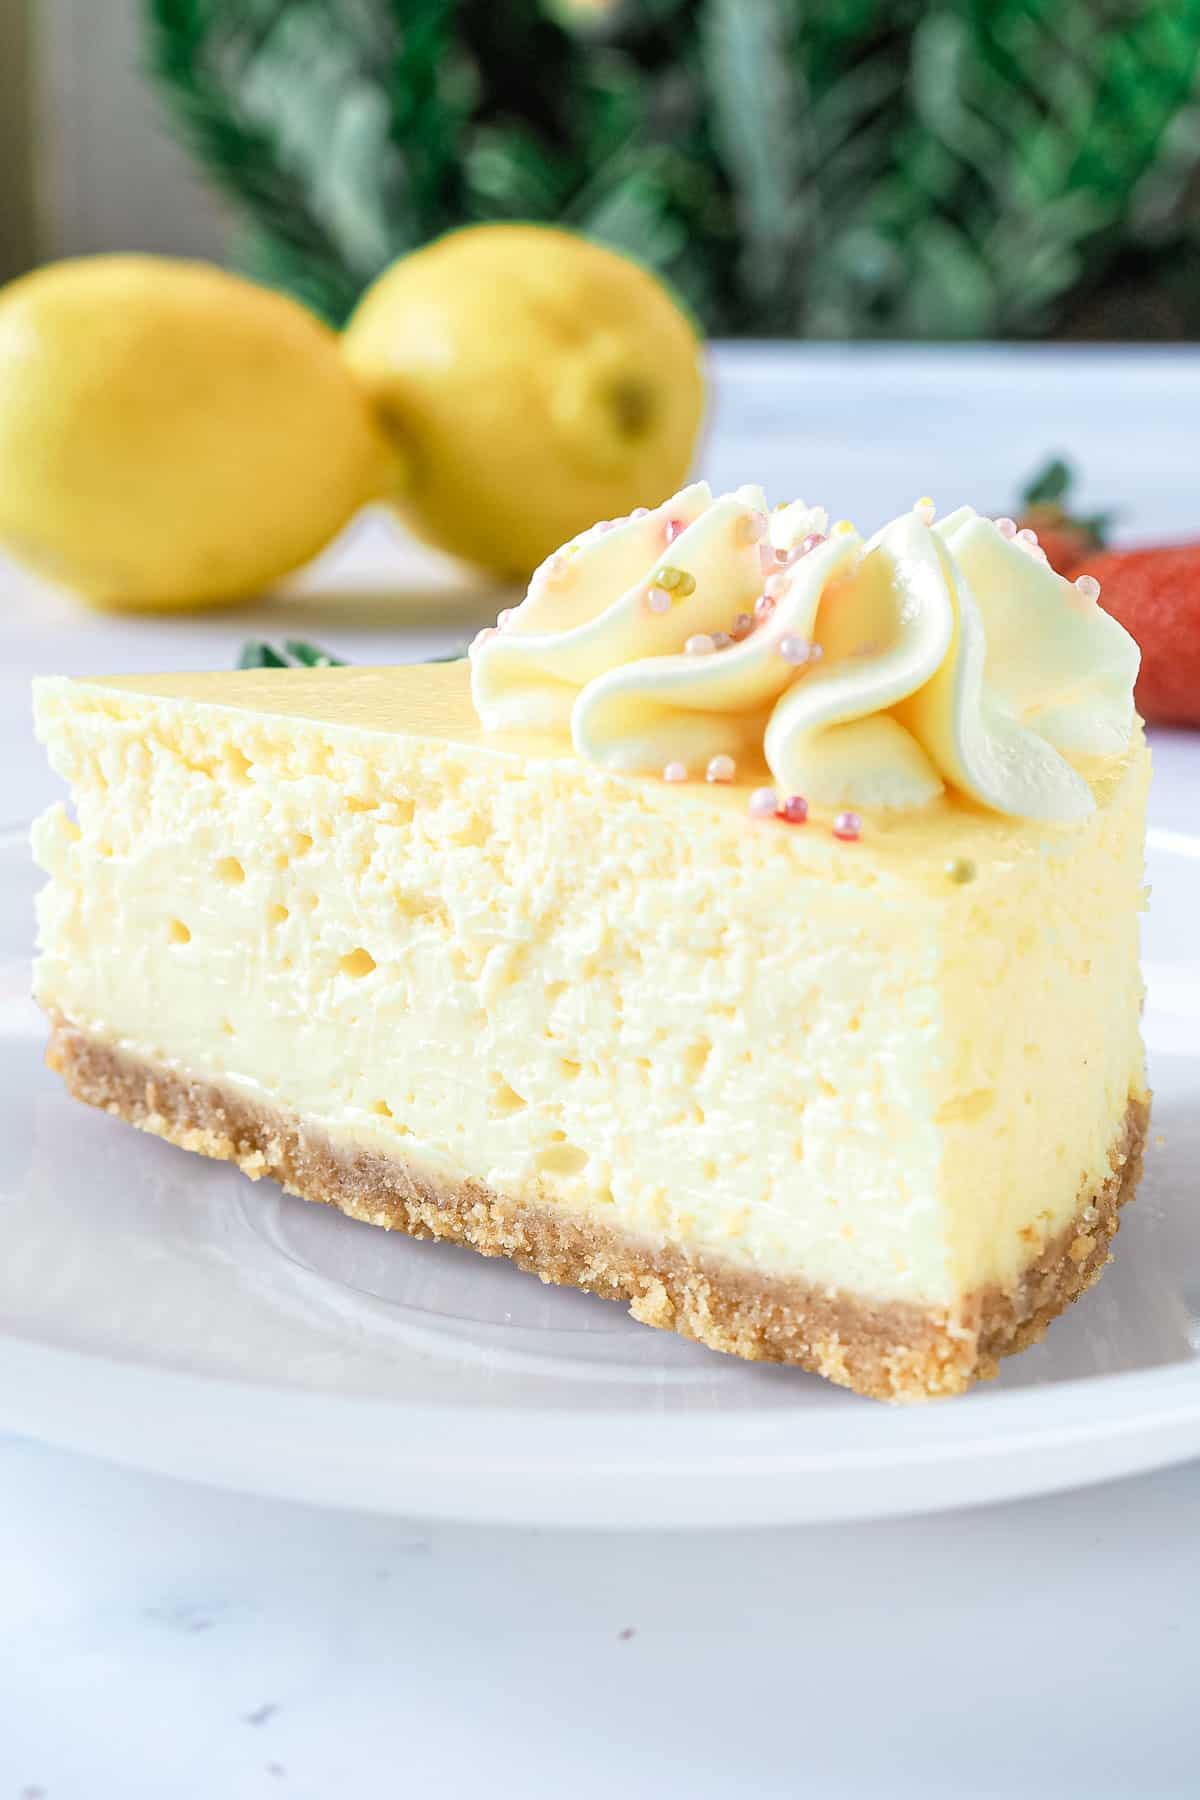 A slice of cheesecake on a white plate